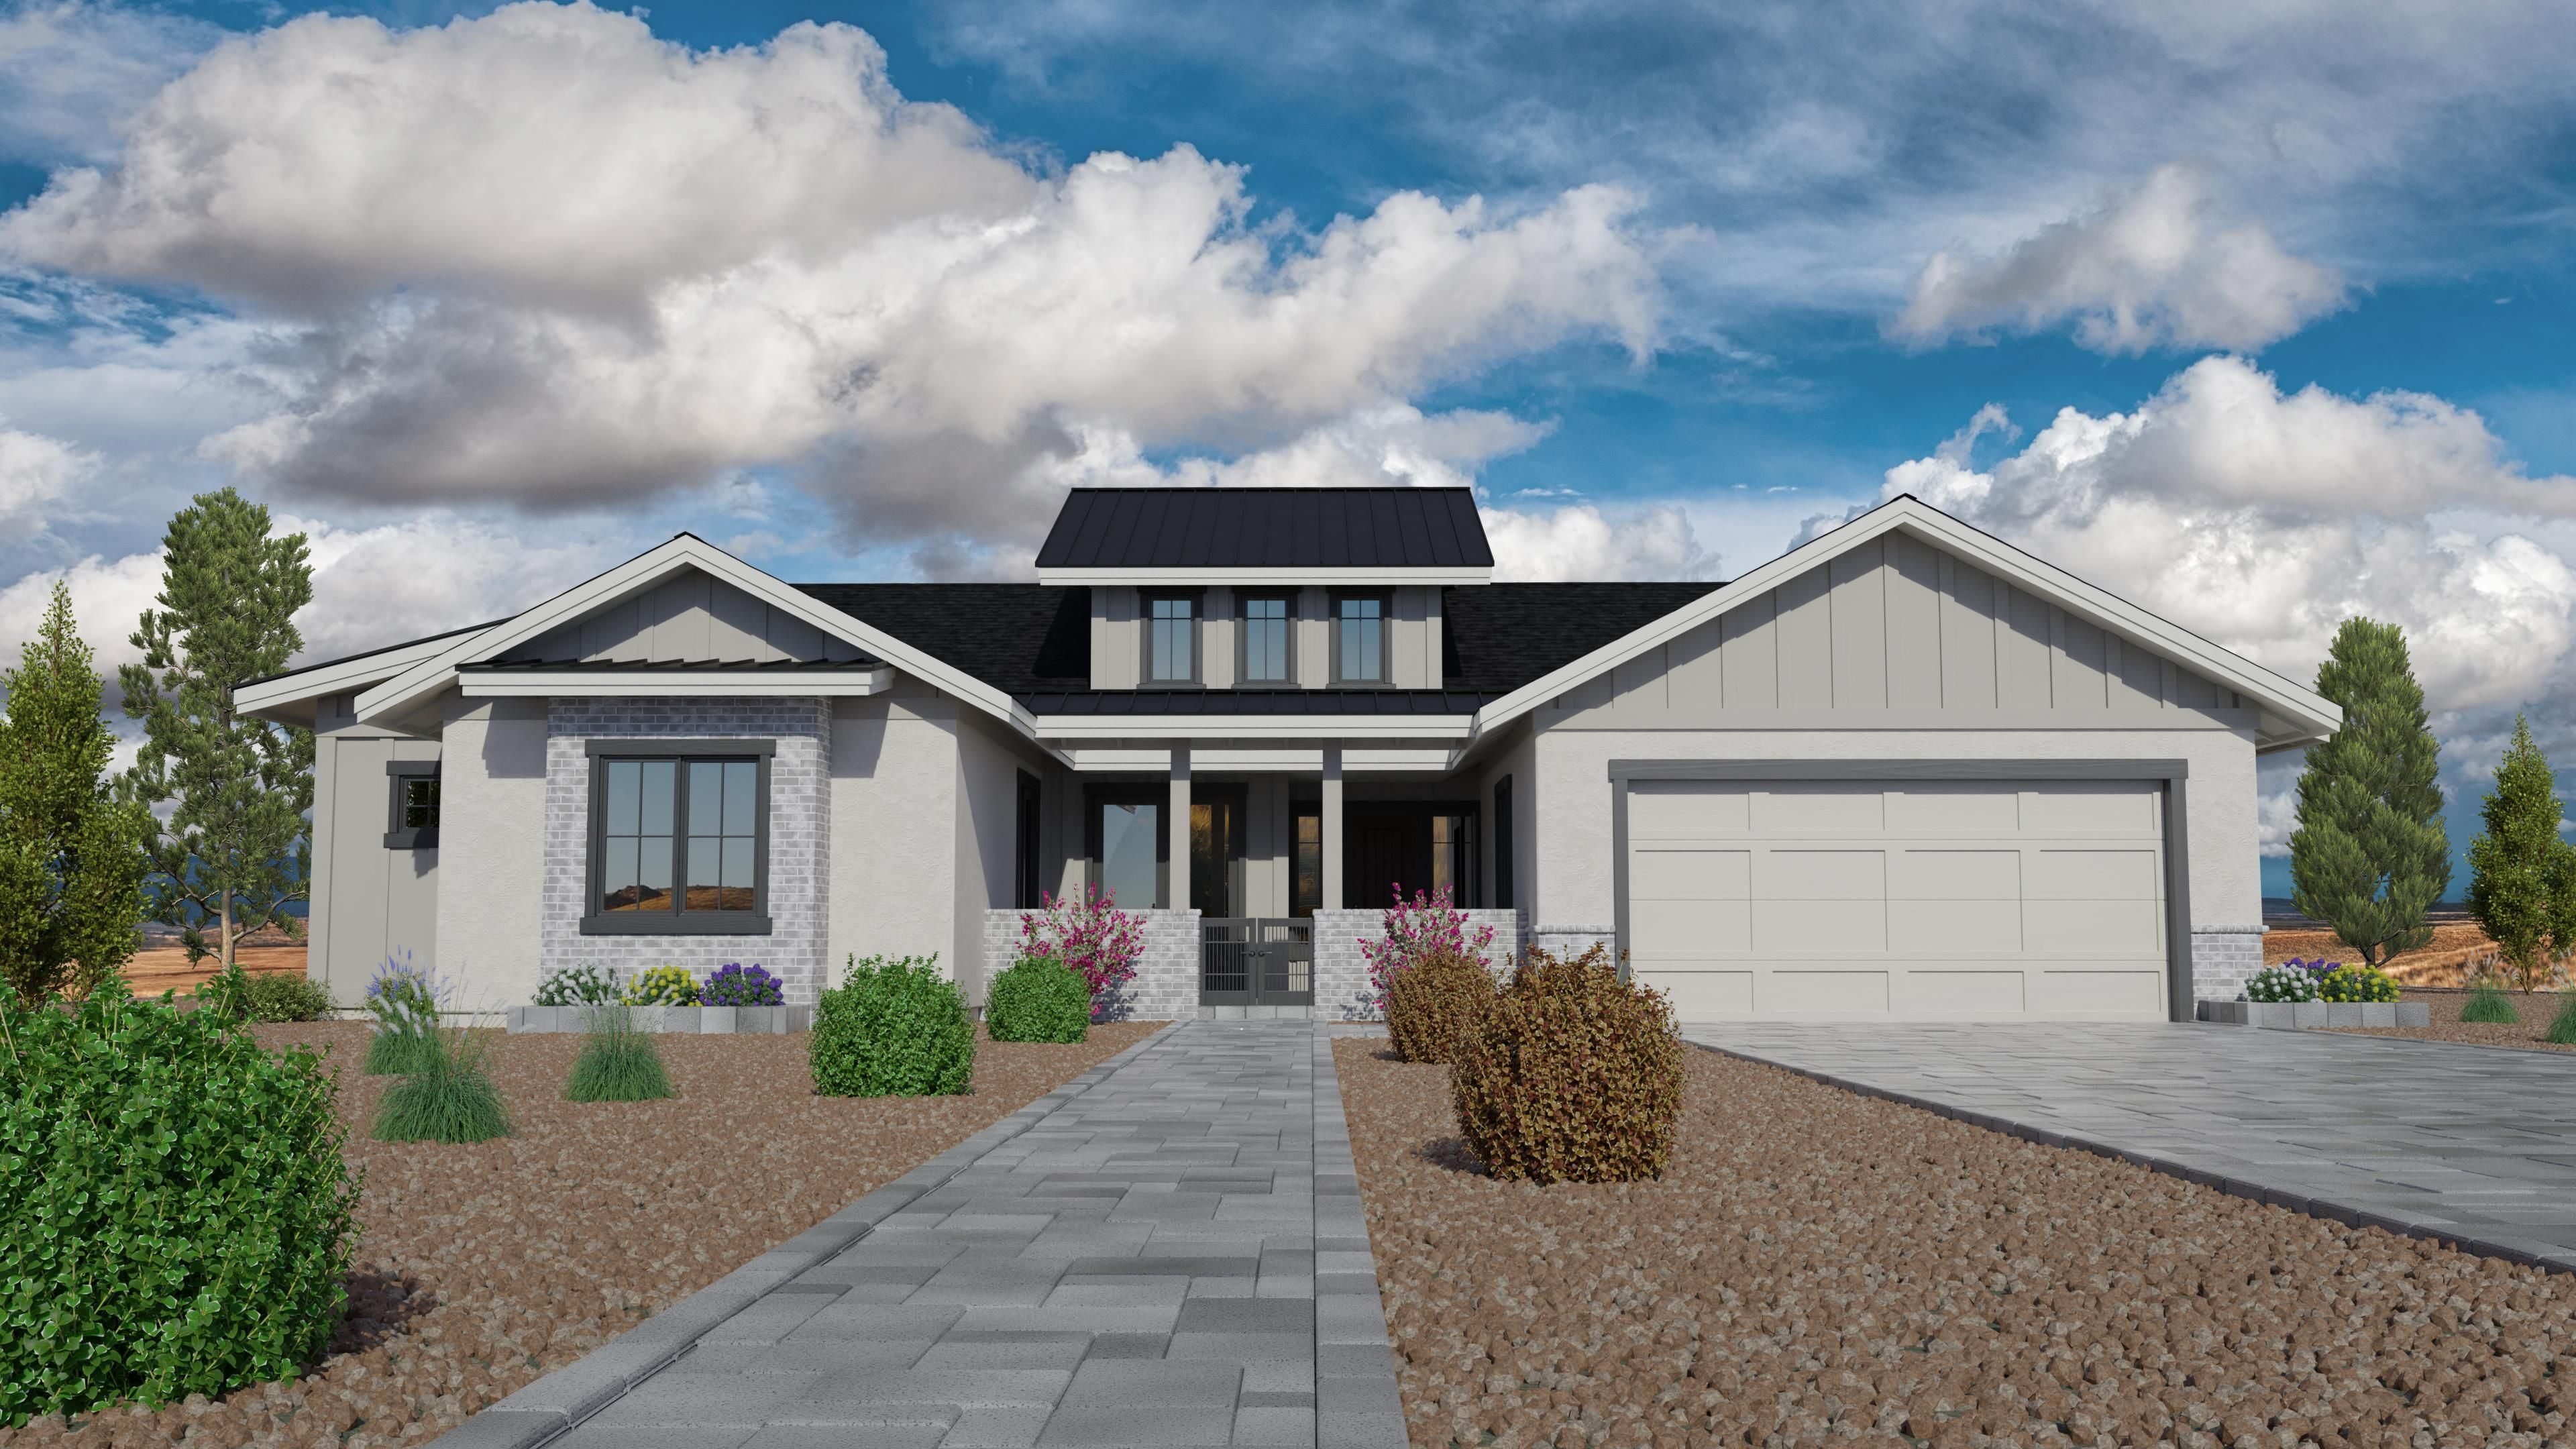 Exterior featured in the Jasper Featured Plan 3020 By Capstone Homes in Prescott, AZ